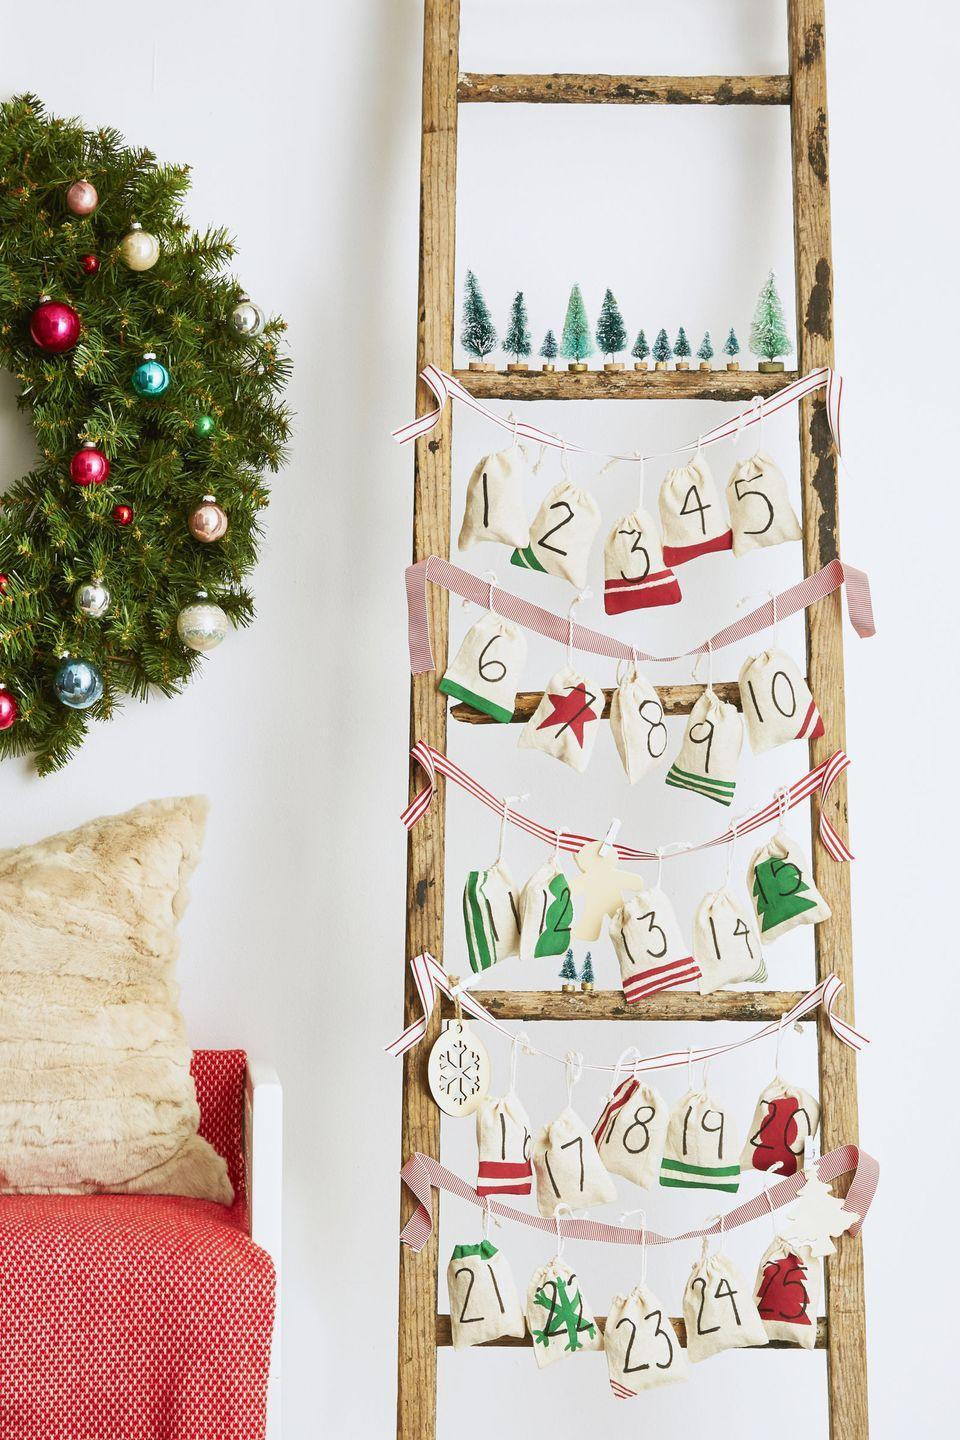 "<p>Instead of opening a flimsy cardboard box, hang up a DIY Advent calendar on a ladder or the tree. Decorated <a href=""https://www.amazon.com/Cotton-Muslin-Bags-Drawstring-Count/dp/B00A4GRZNK/?tag=syn-yahoo-20&ascsubtag=%5Bartid%7C10057.g.999%5Bsrc%7Cyahoo-us"" rel=""nofollow noopener"" target=""_blank"" data-ylk=""slk:muslin craft bags"" class=""link rapid-noclick-resp"">muslin craft bags</a> conceal treats, toys, and messages from Santa—and you can fill them again next year, too.</p>"